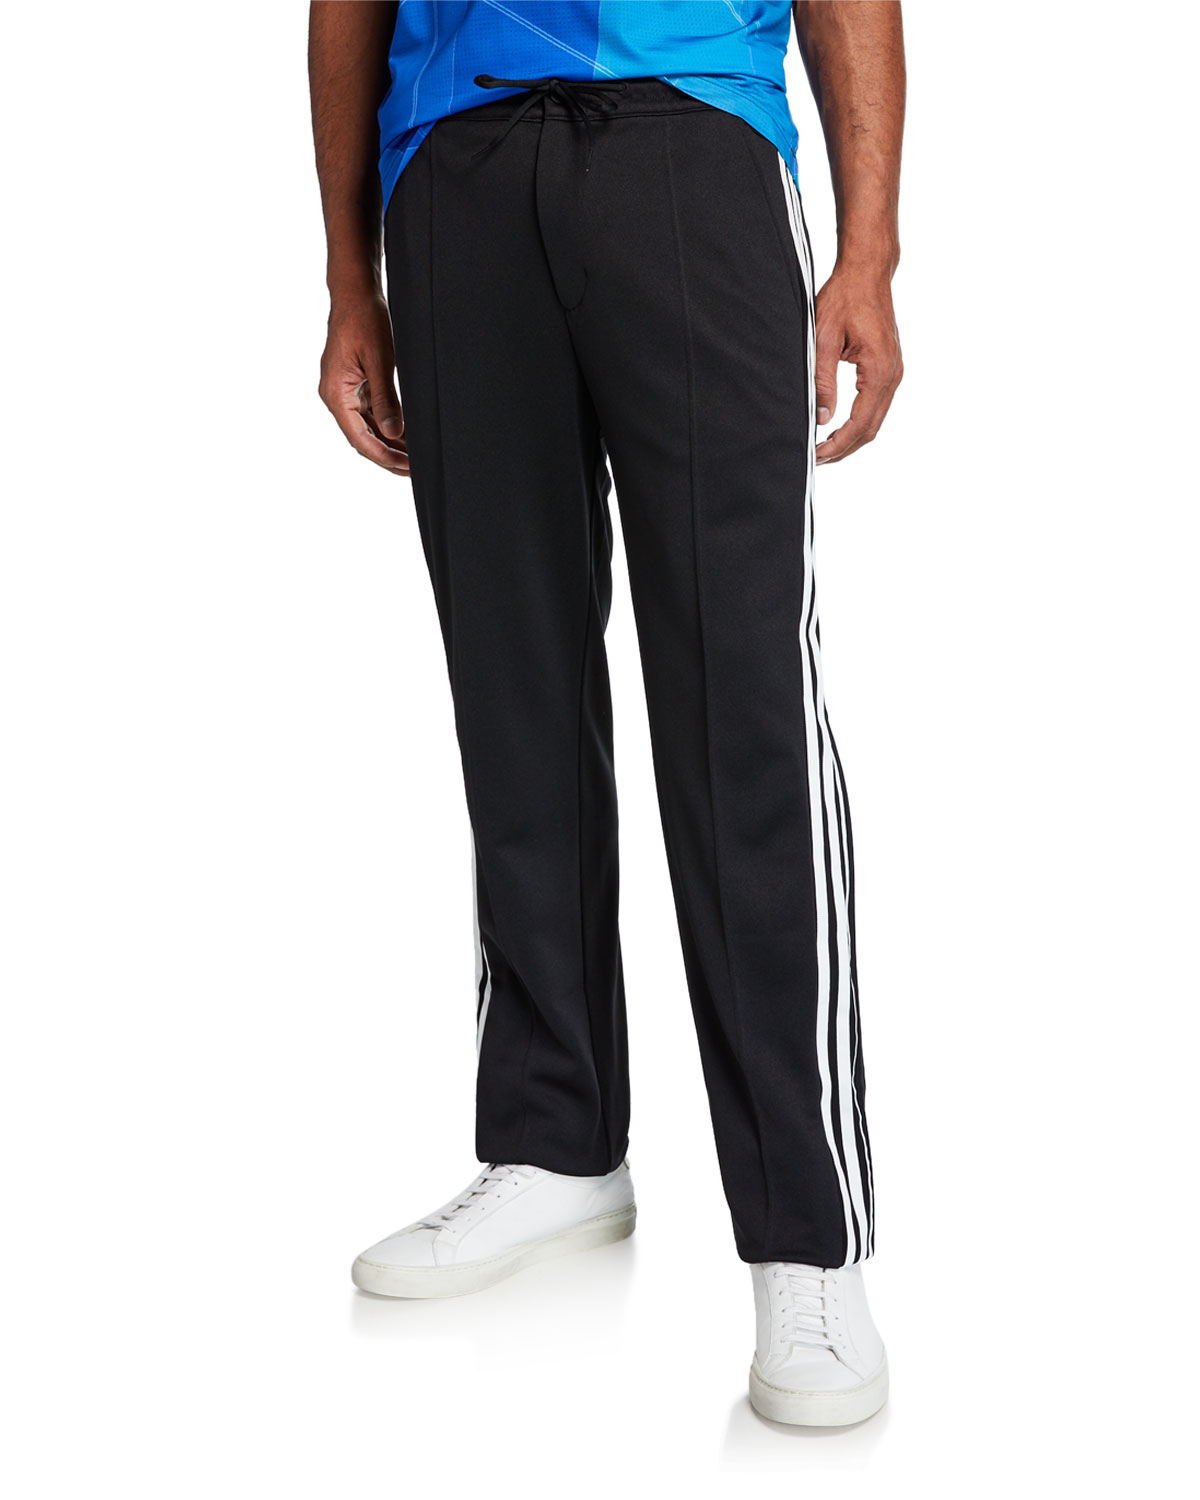 Men's Striped Track Pants by Y 3